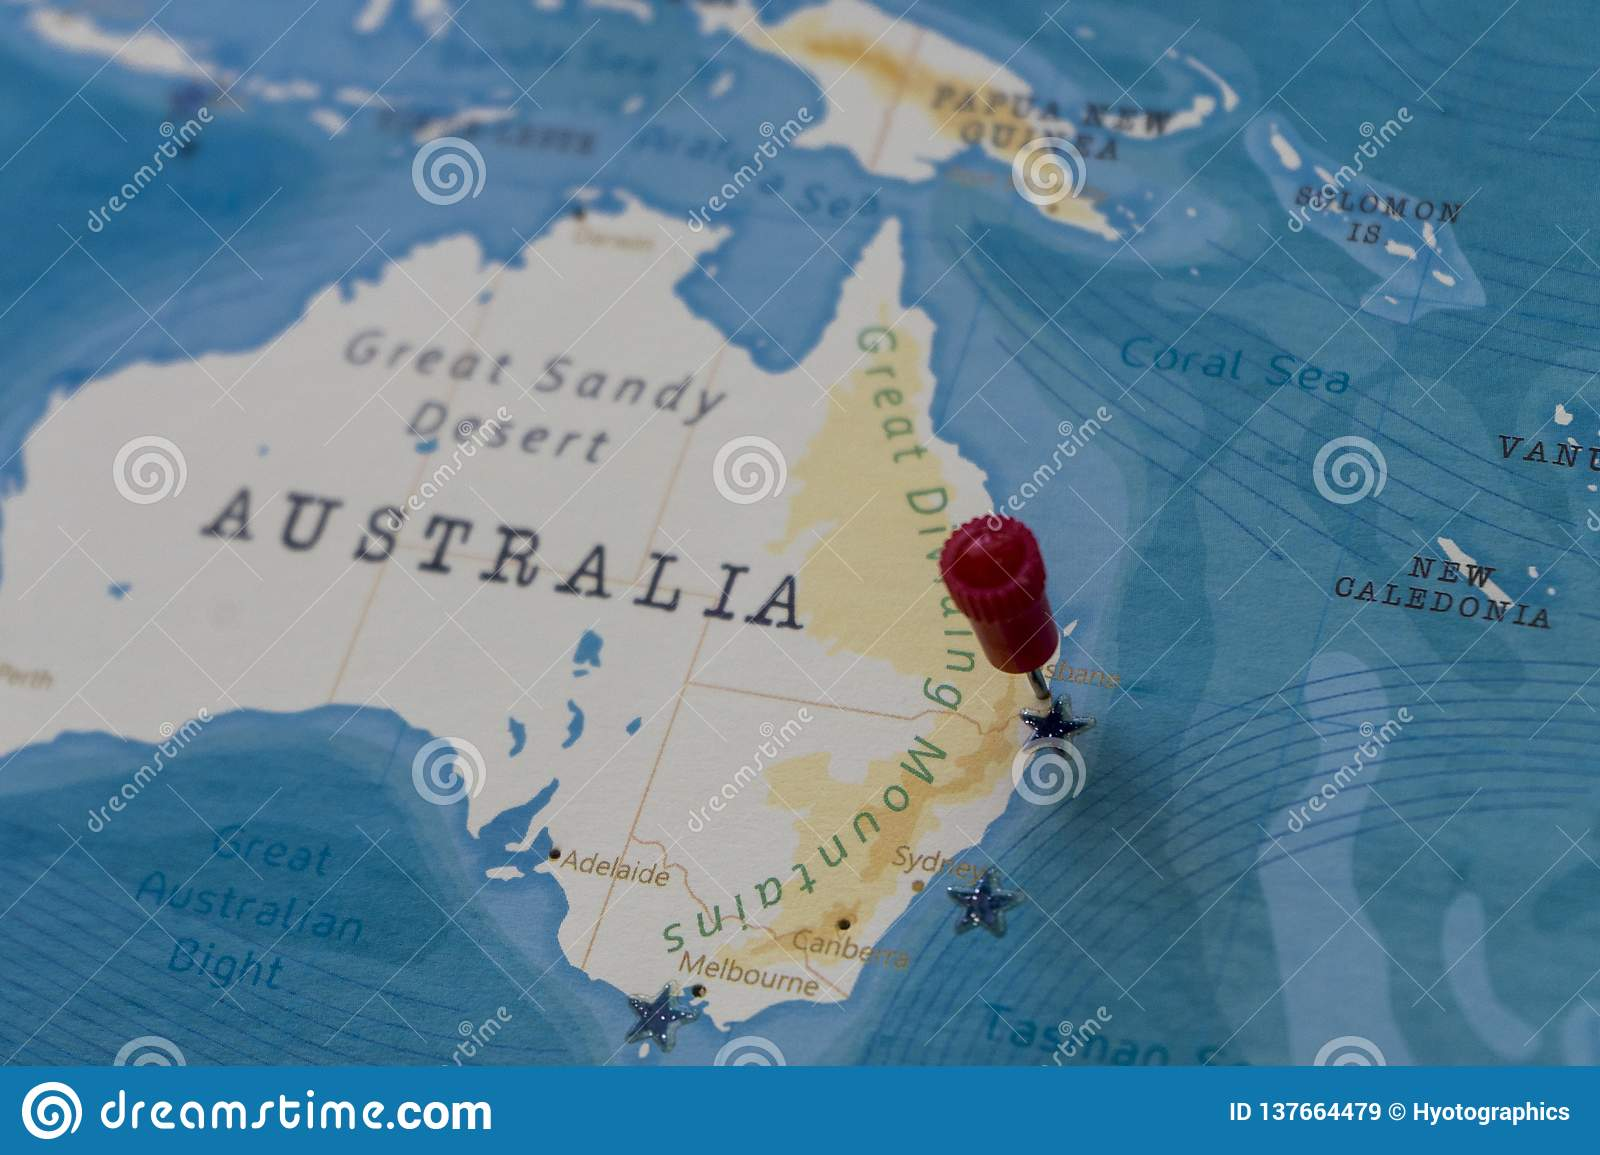 Australia Underwater Map.A Pin On Brisbane Australia In The World Map Stock Image Image Of